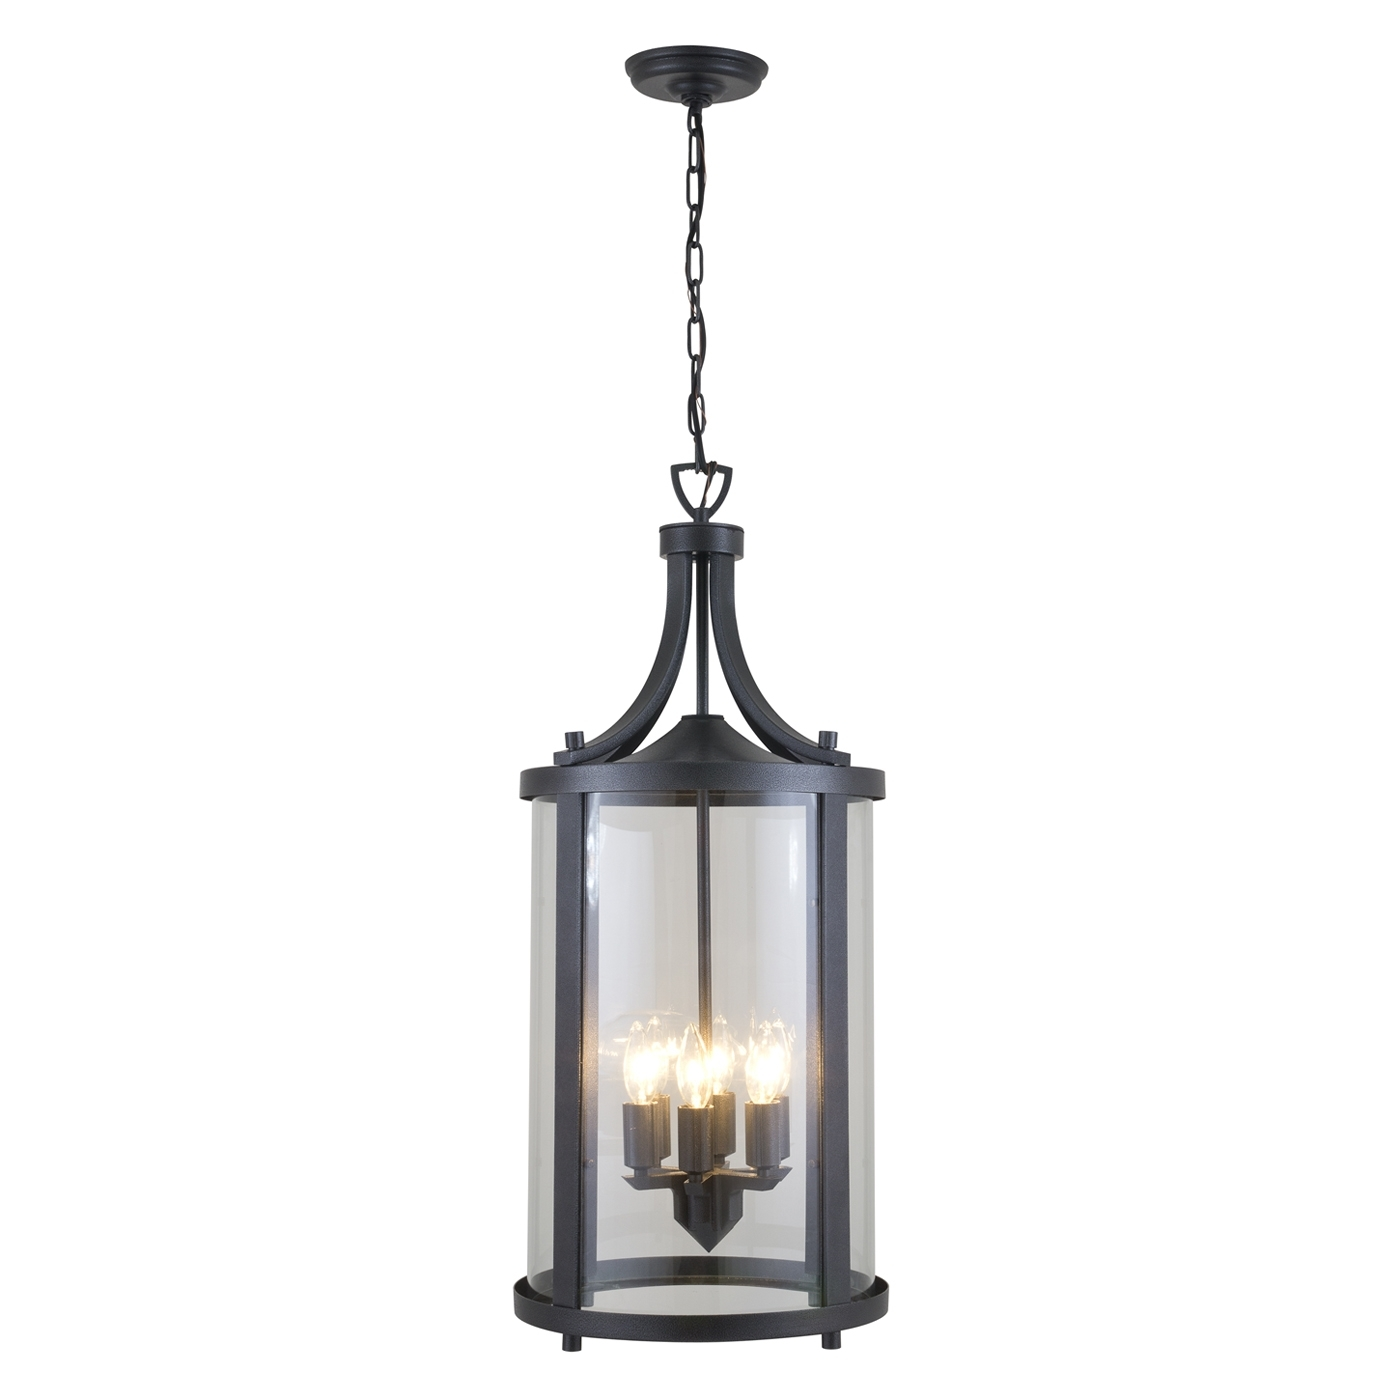 Inspiration about Dvi Niagara Outdoor Large Pendant | Lowe's Canada In Outdoor Hanging Lanterns At Lowes (#9 of 15)